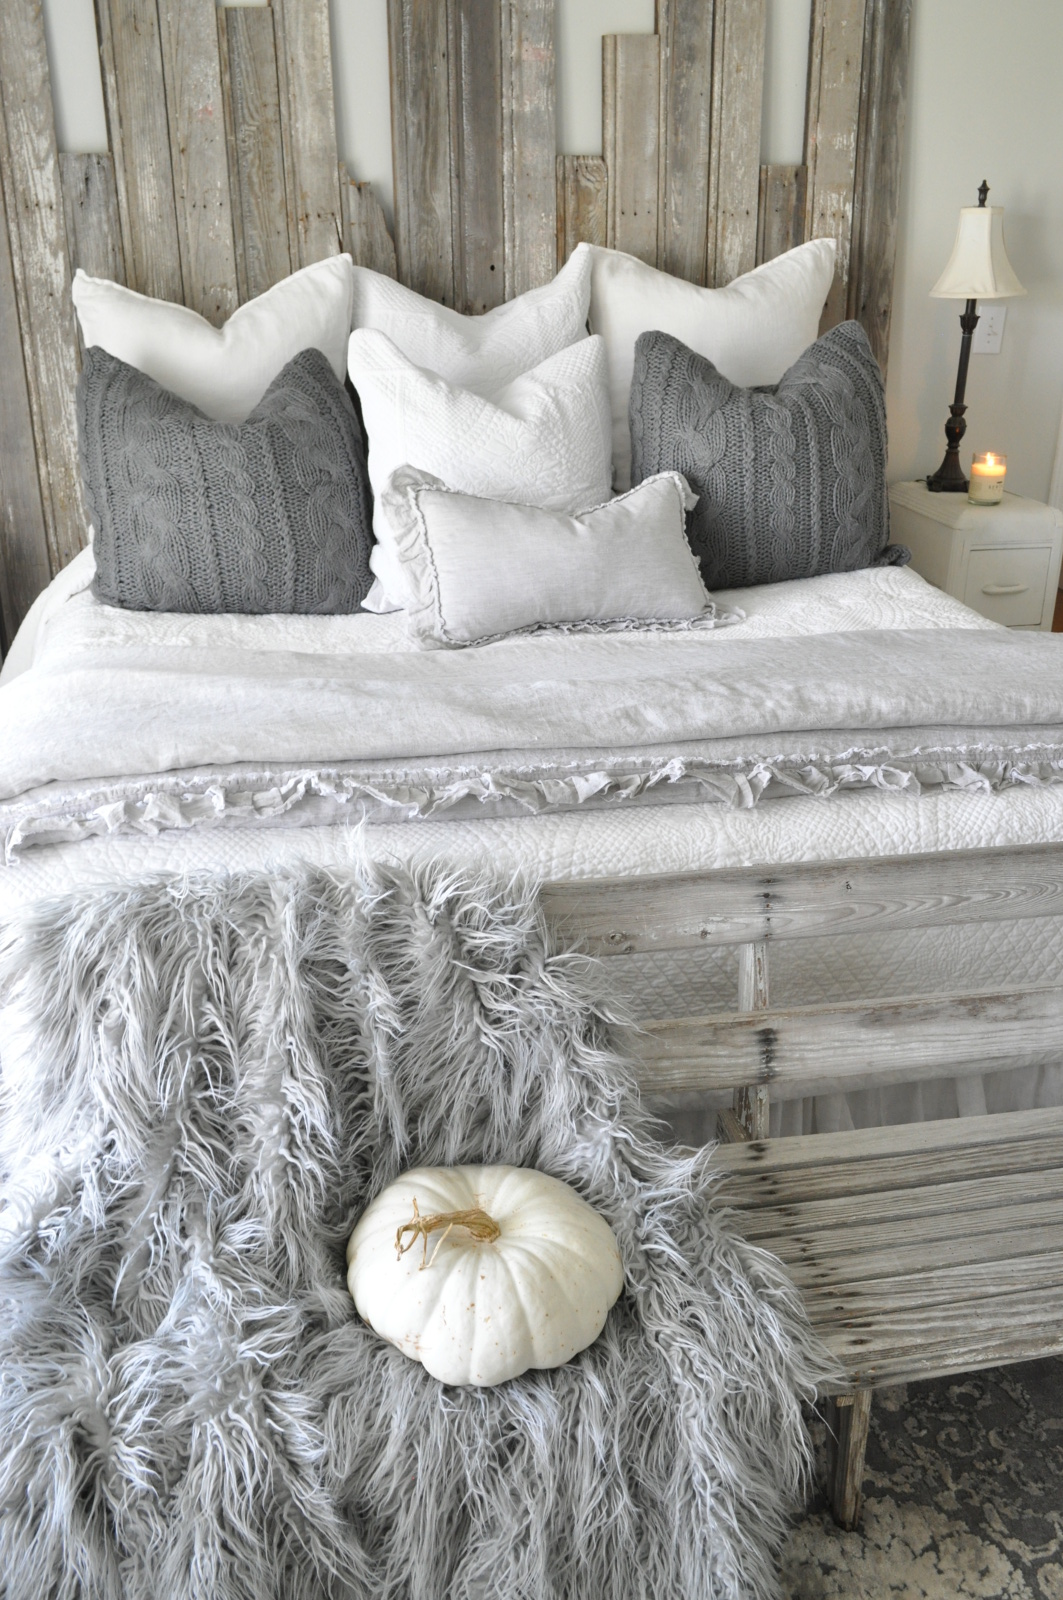 I Chose Pretty Whites And Grays To Coordinate With Our Master Bedroom Colors Walls Are Silver Drop By BEHR Headboard Is Constructed Of Reclaimed